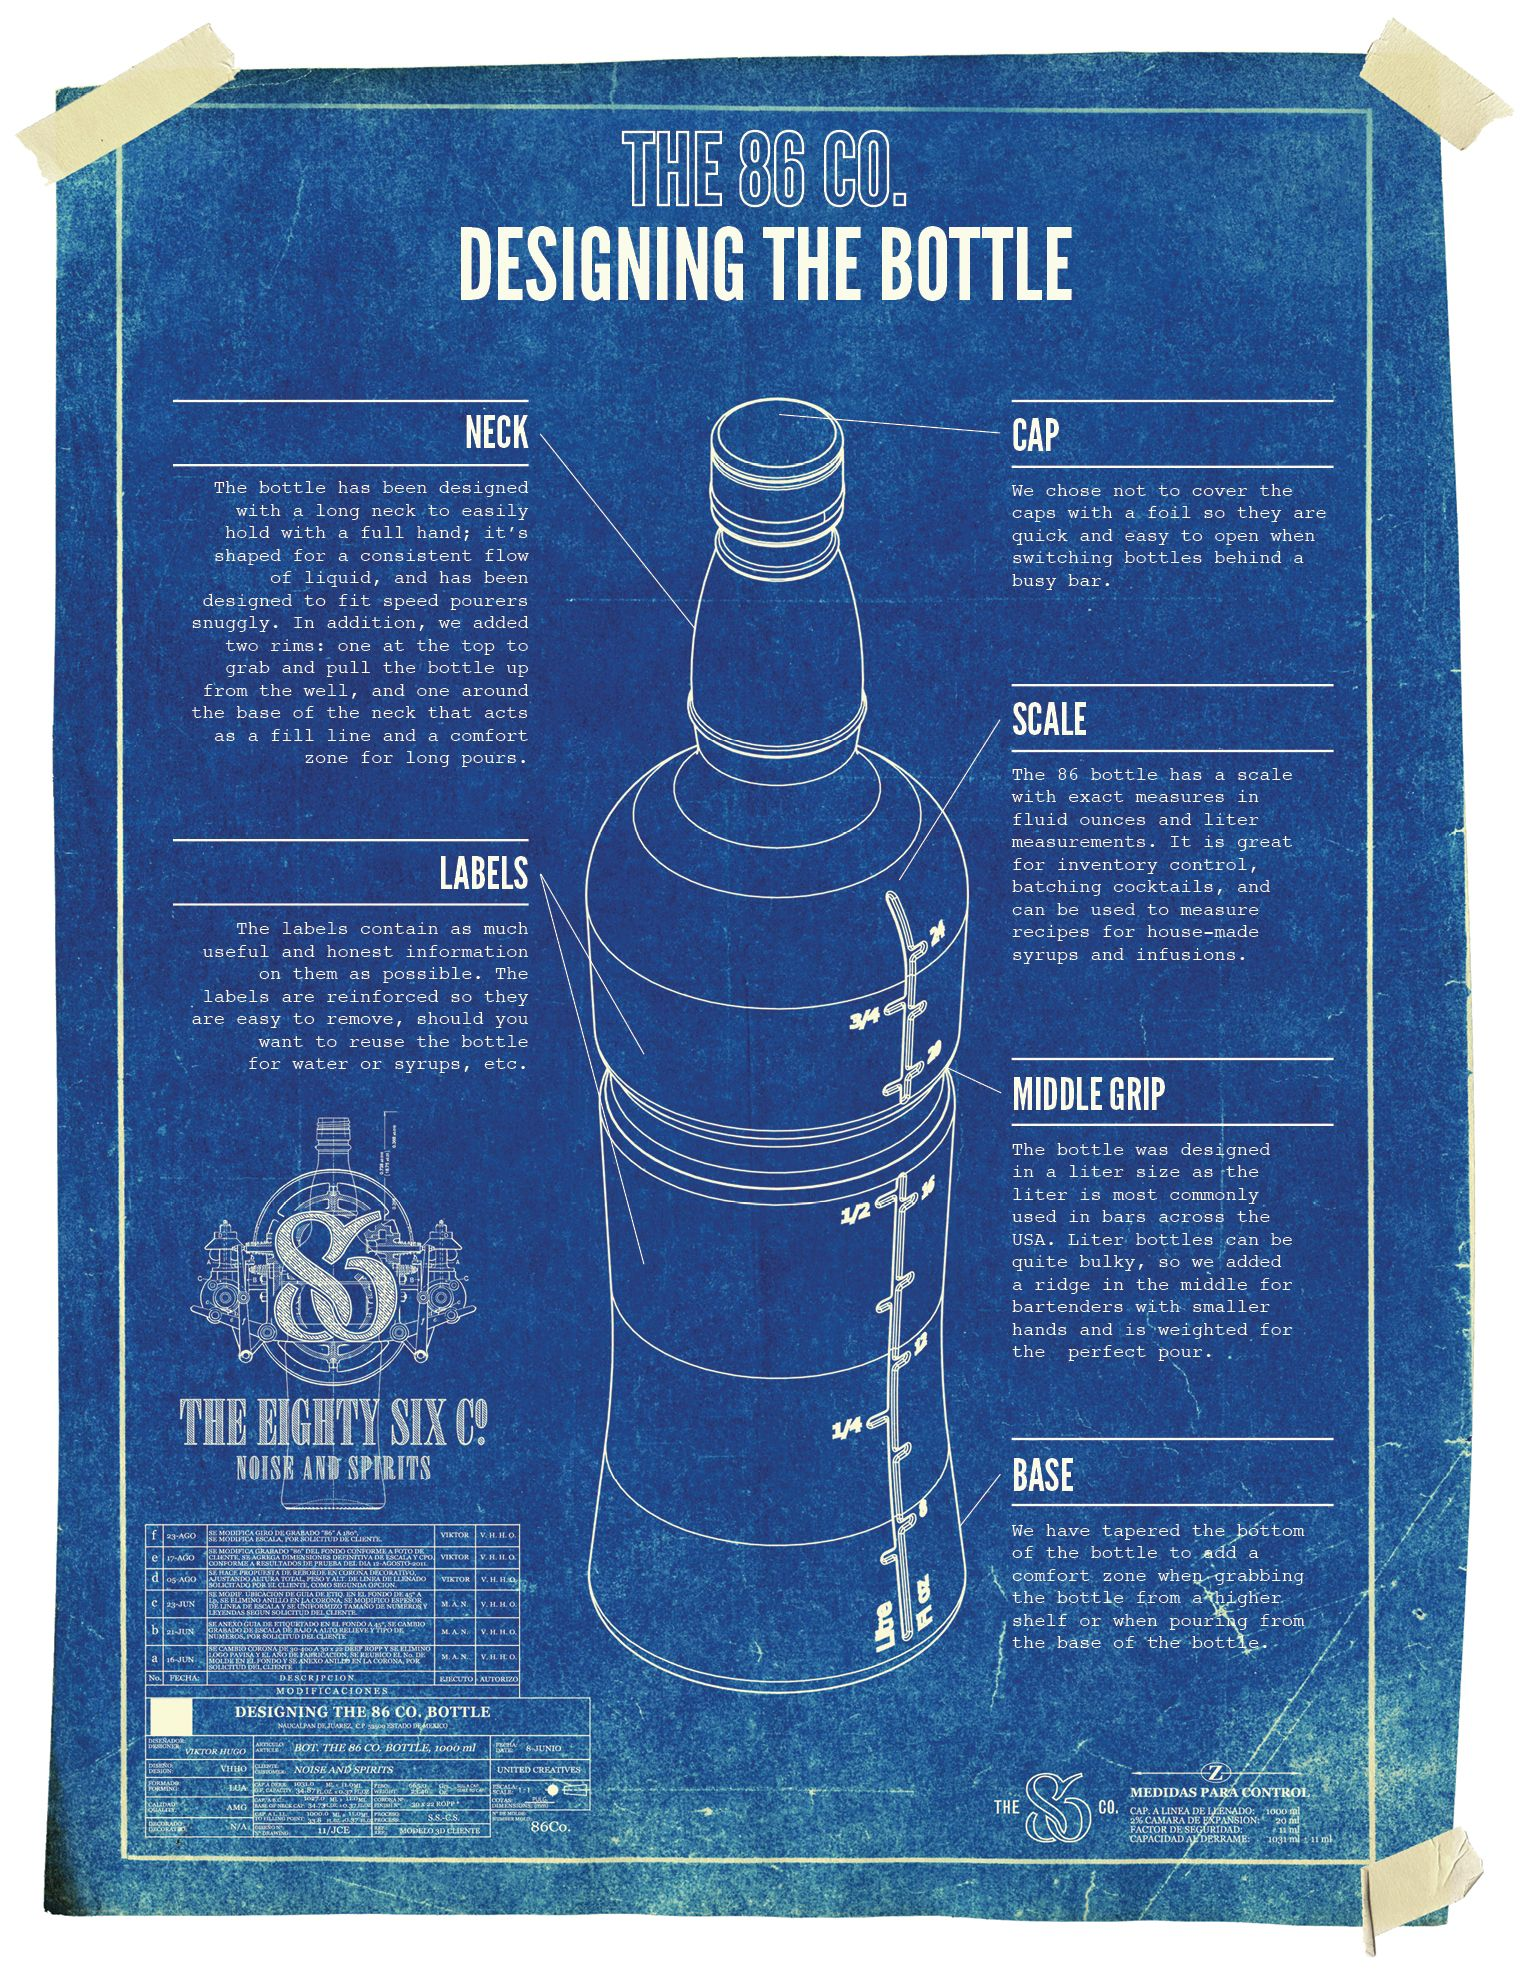 Bottle blueprint design for the 86 co new york by united creatives